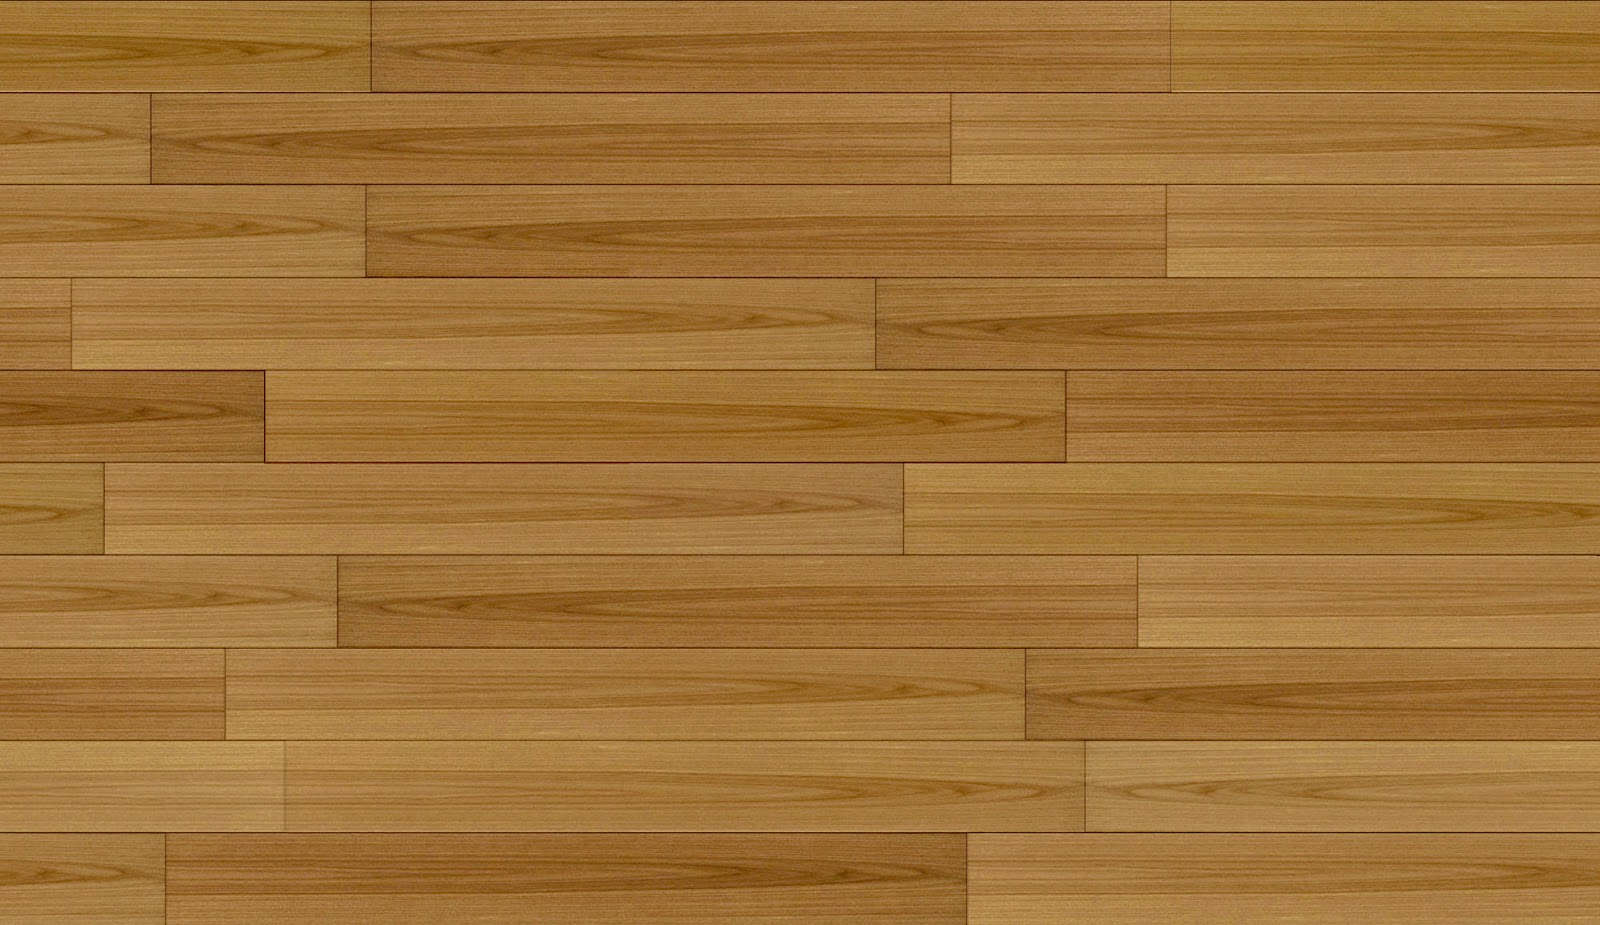 Sketchup texture april 2013 for Hardwood laminate